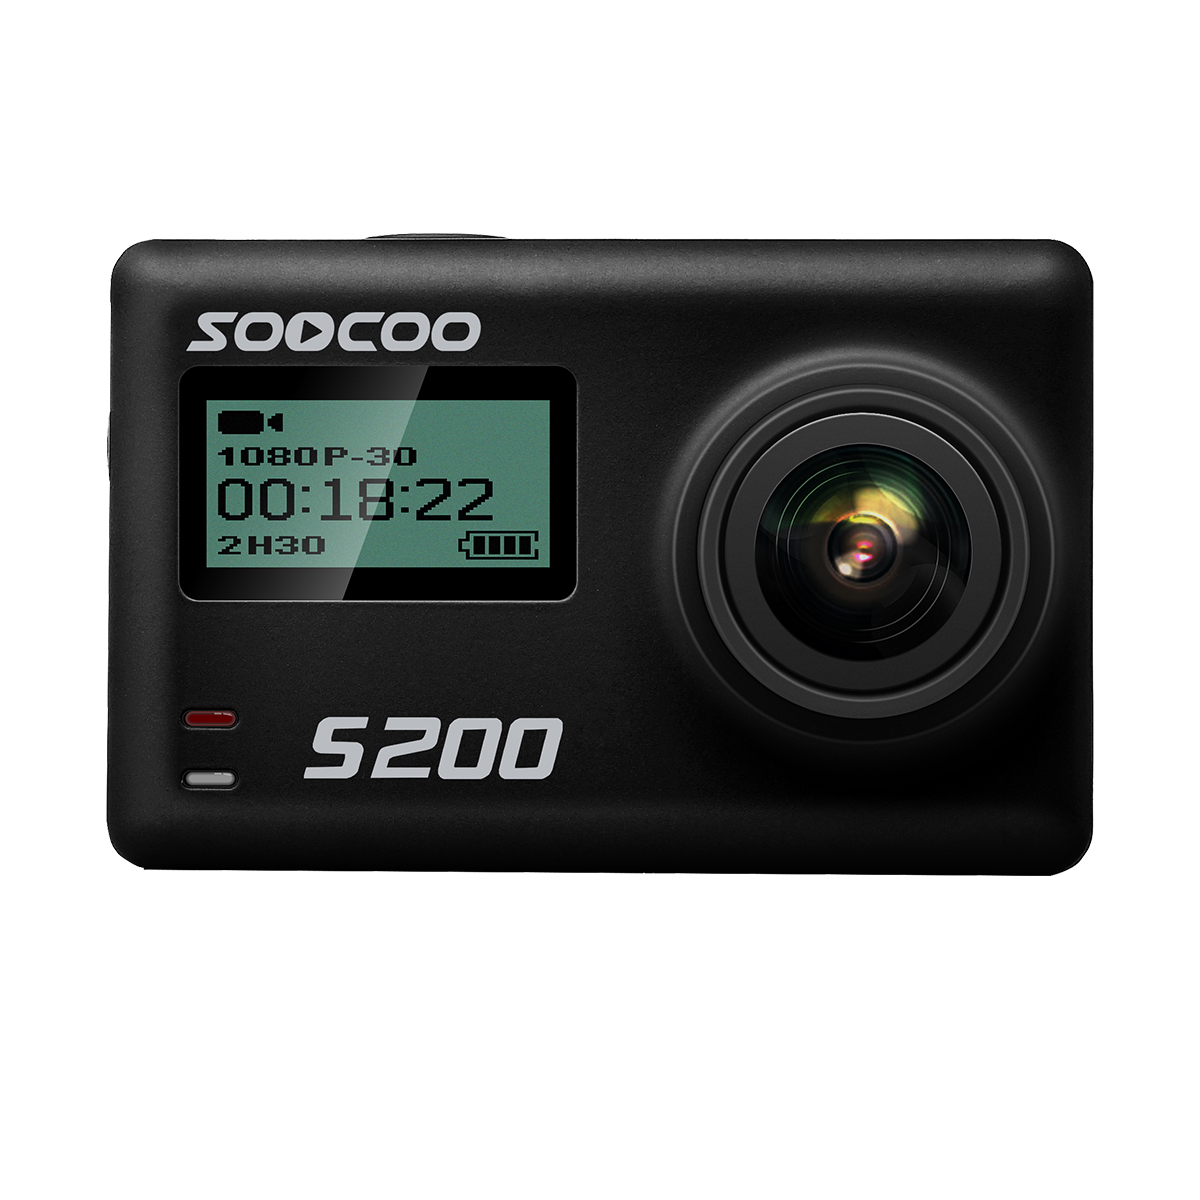 SOOCOO S200 Action Camera Ultra HD 4K NTK96660 + IMX078 with WiFi Gryo Voice con